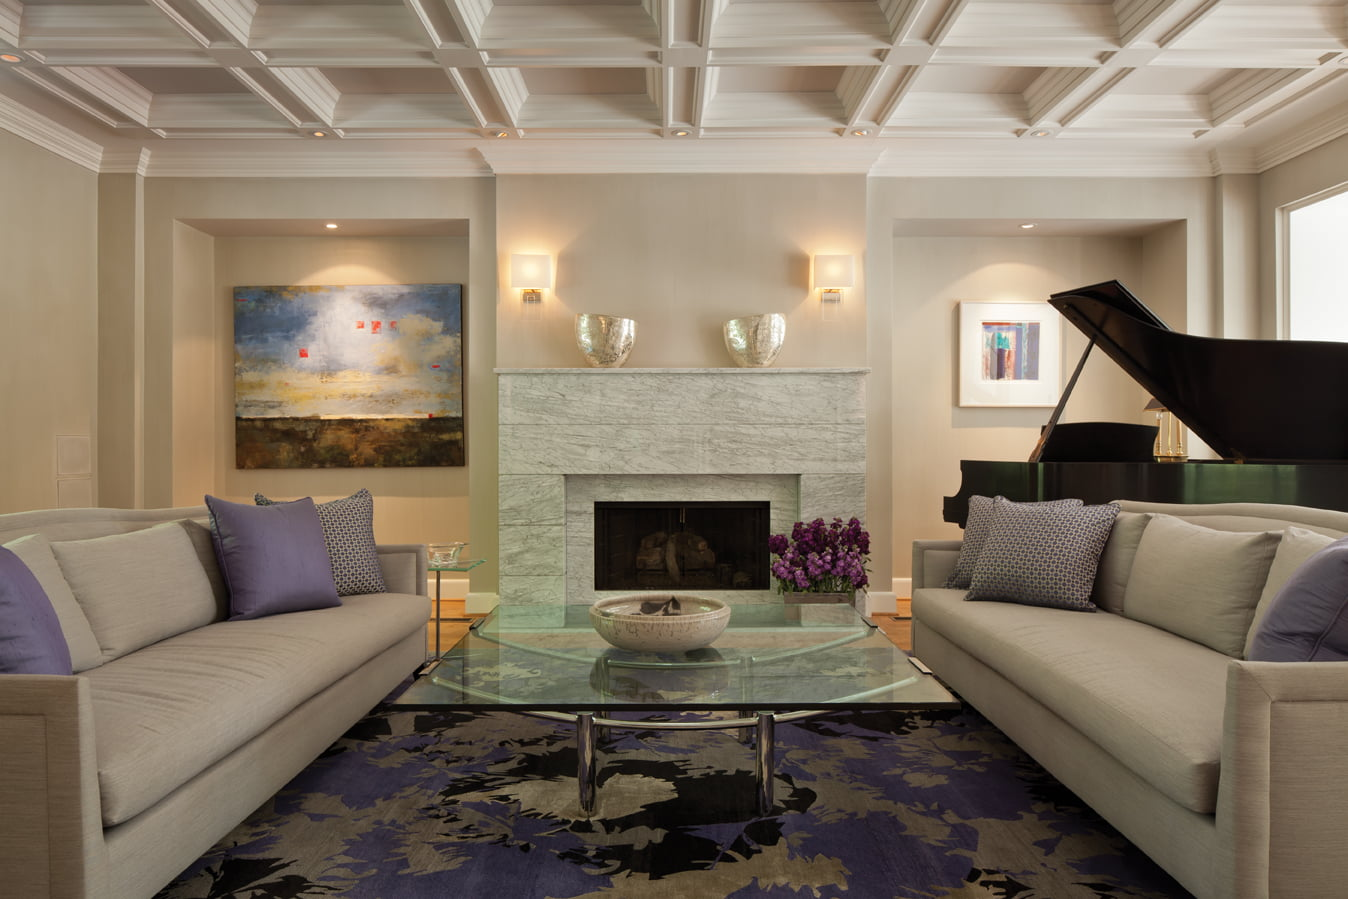 In the sunken living room, sofas by Donghia and a  marble fireplace surround reflect a lighter, pared-down style.